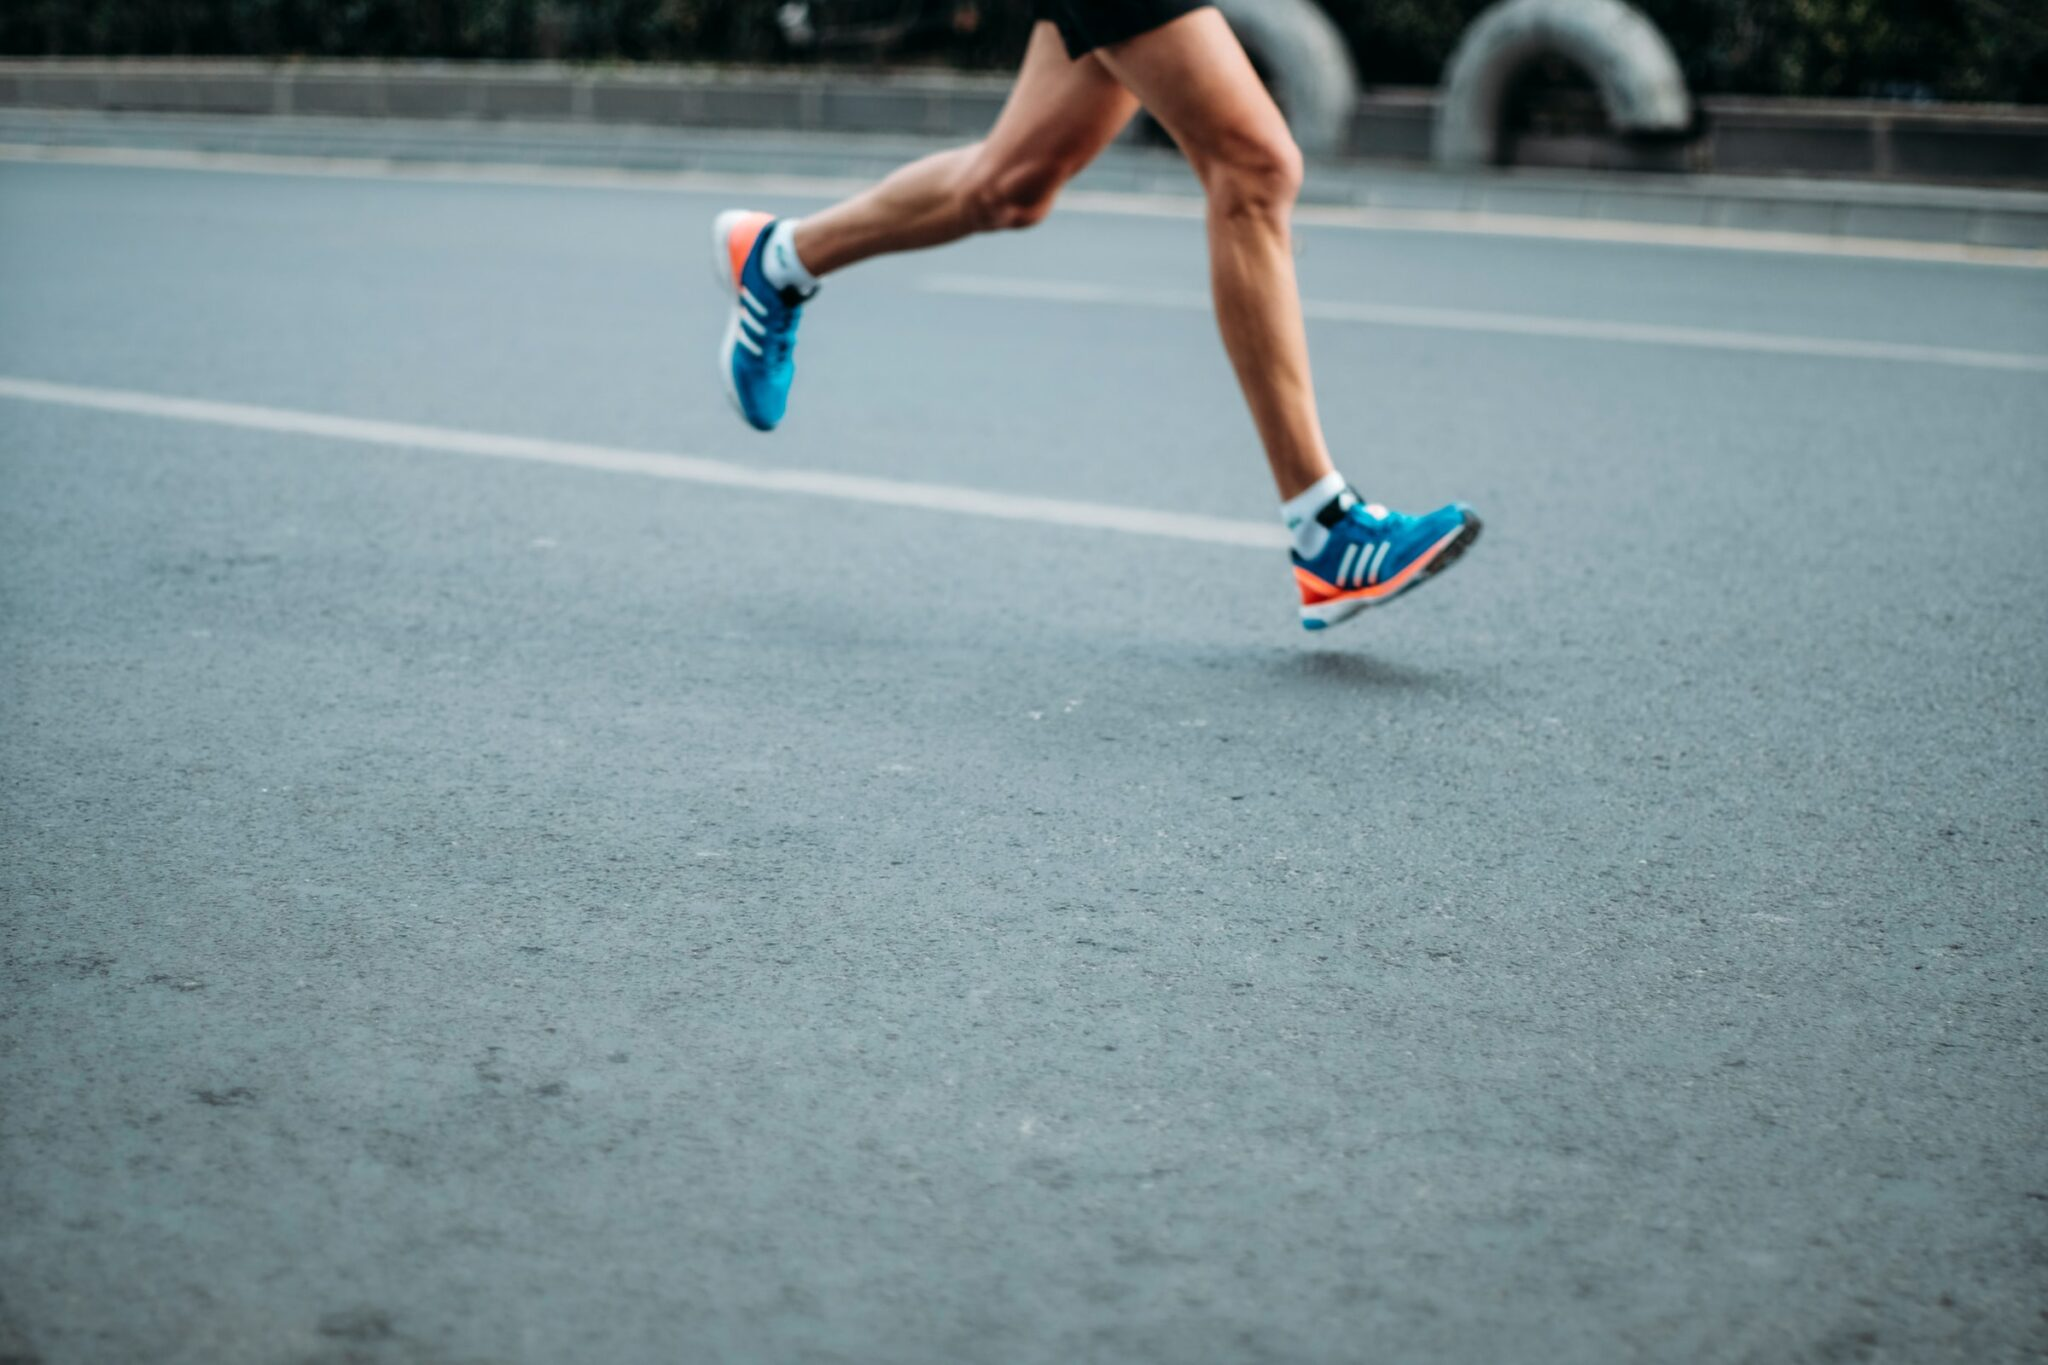 How Do I Relieve Hip Pain from Running? – 2021 Guide